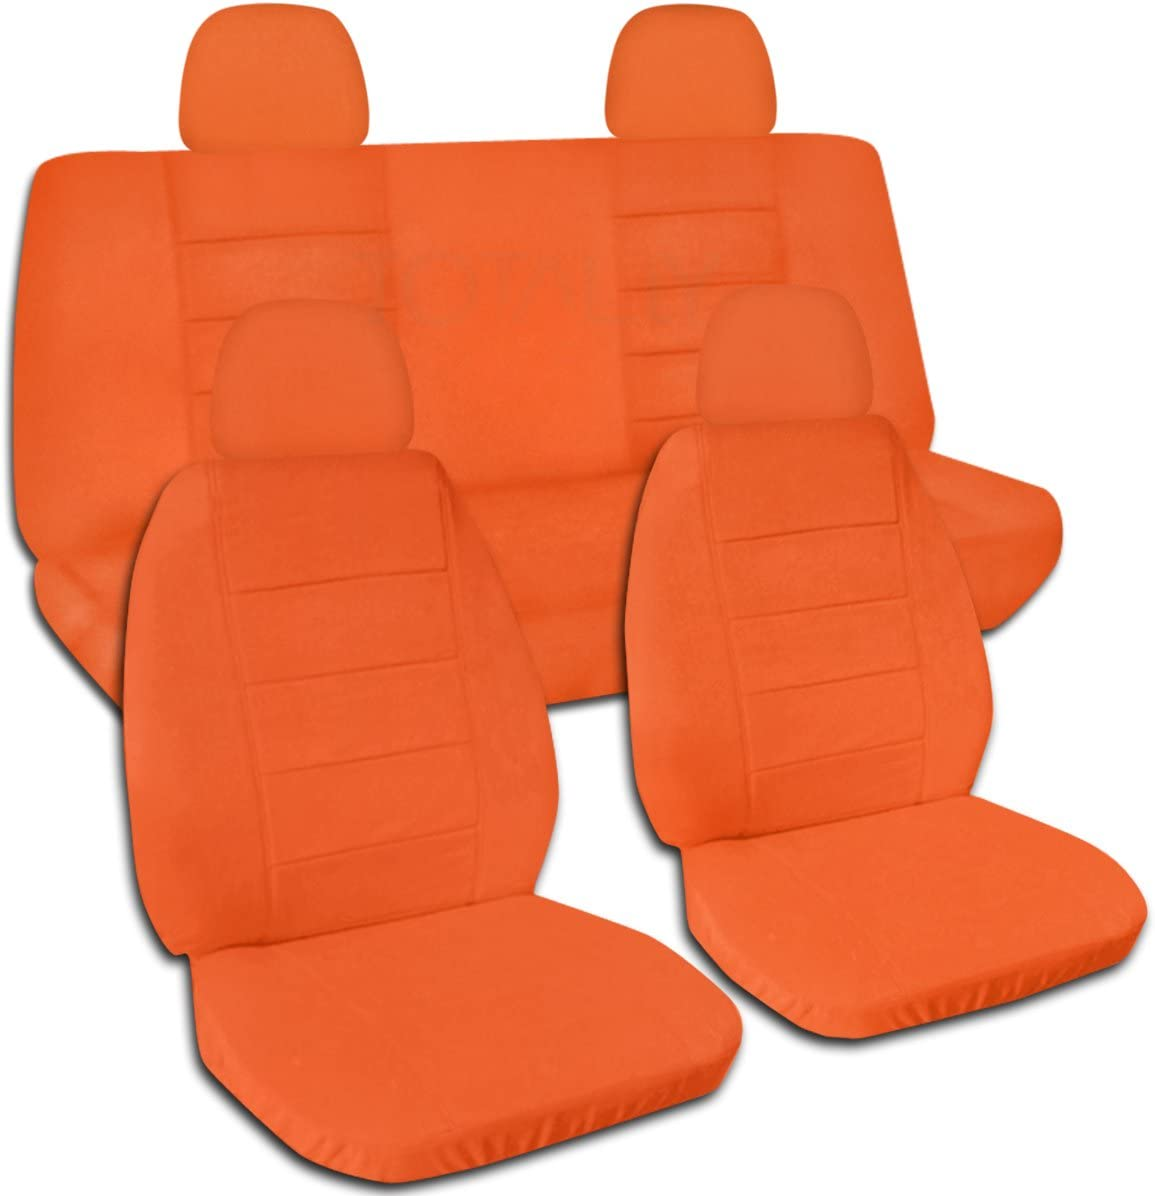 Totally Covers Solid Color Car Seat Covers w 4 (2 Front + 2 Rear) Headrest Covers: Orange - Universal Fit - Full Set - Buckets & Bench - Option for Airbag/Seat Belt/Armrest/Lever/Split Compatible